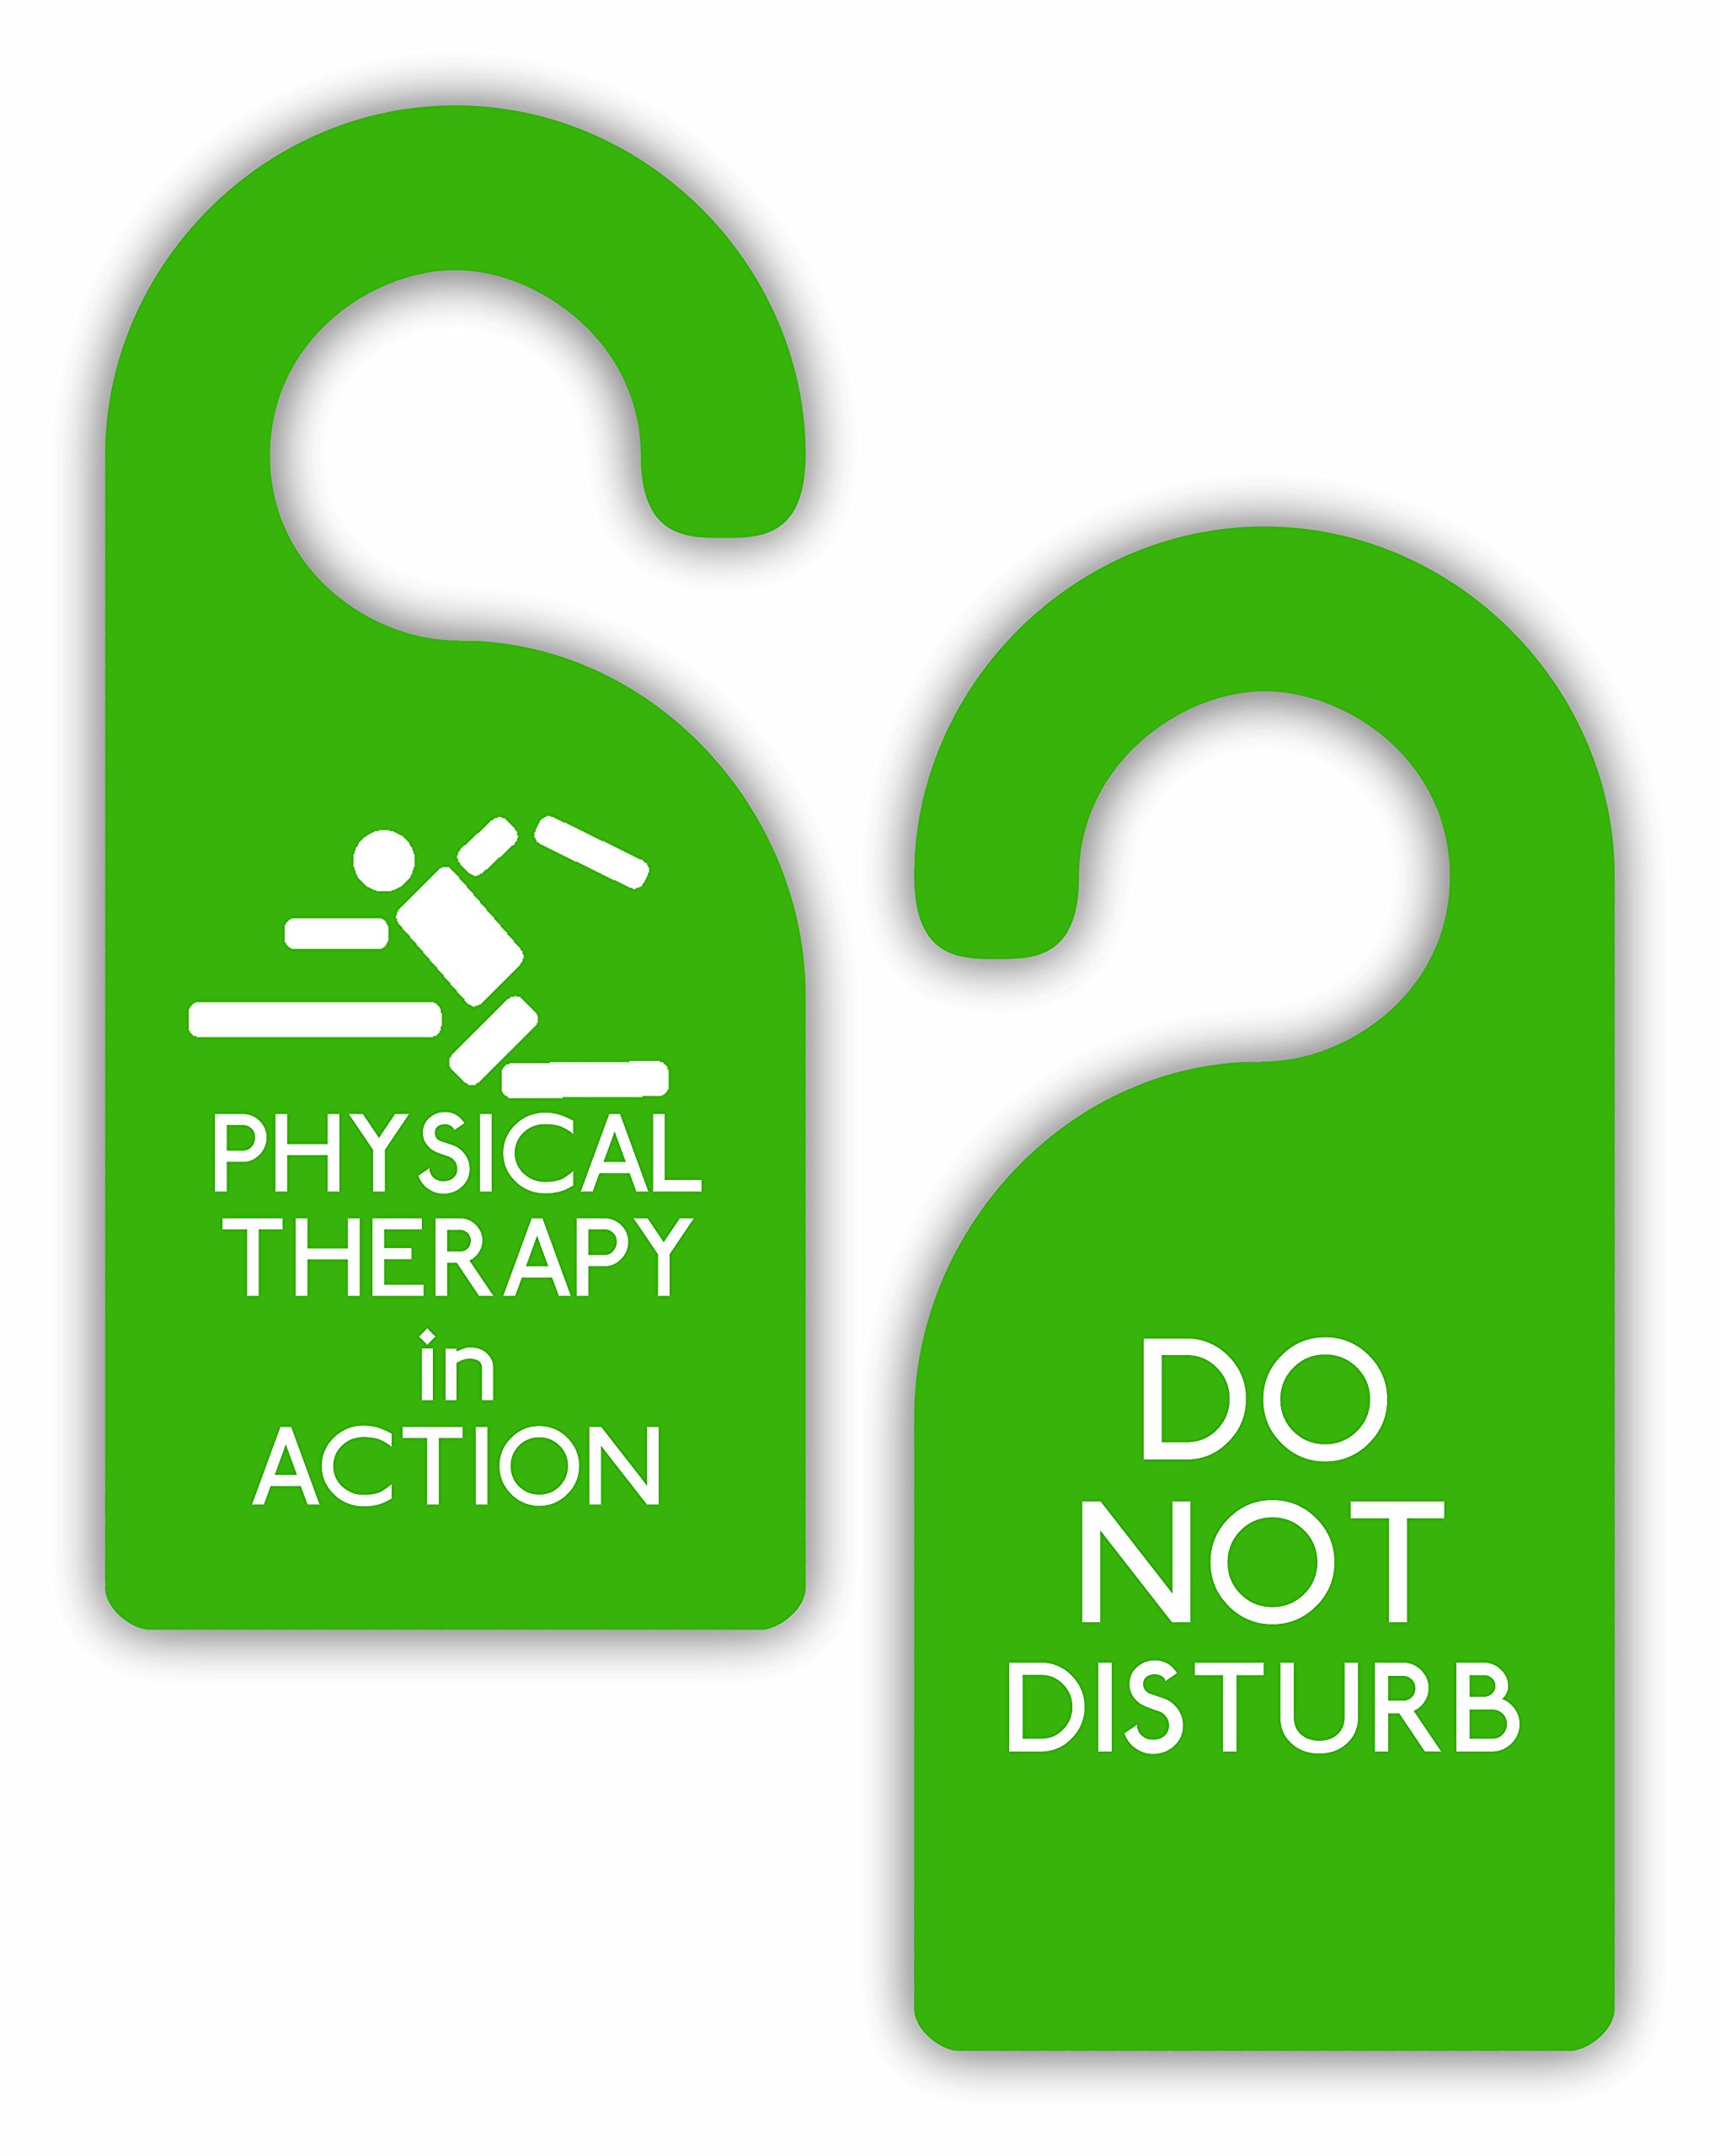 Physical Therapy in Action/Do Not Disturb - Therapist - Double-Sided Hard Plastic Glossy Door Hanger